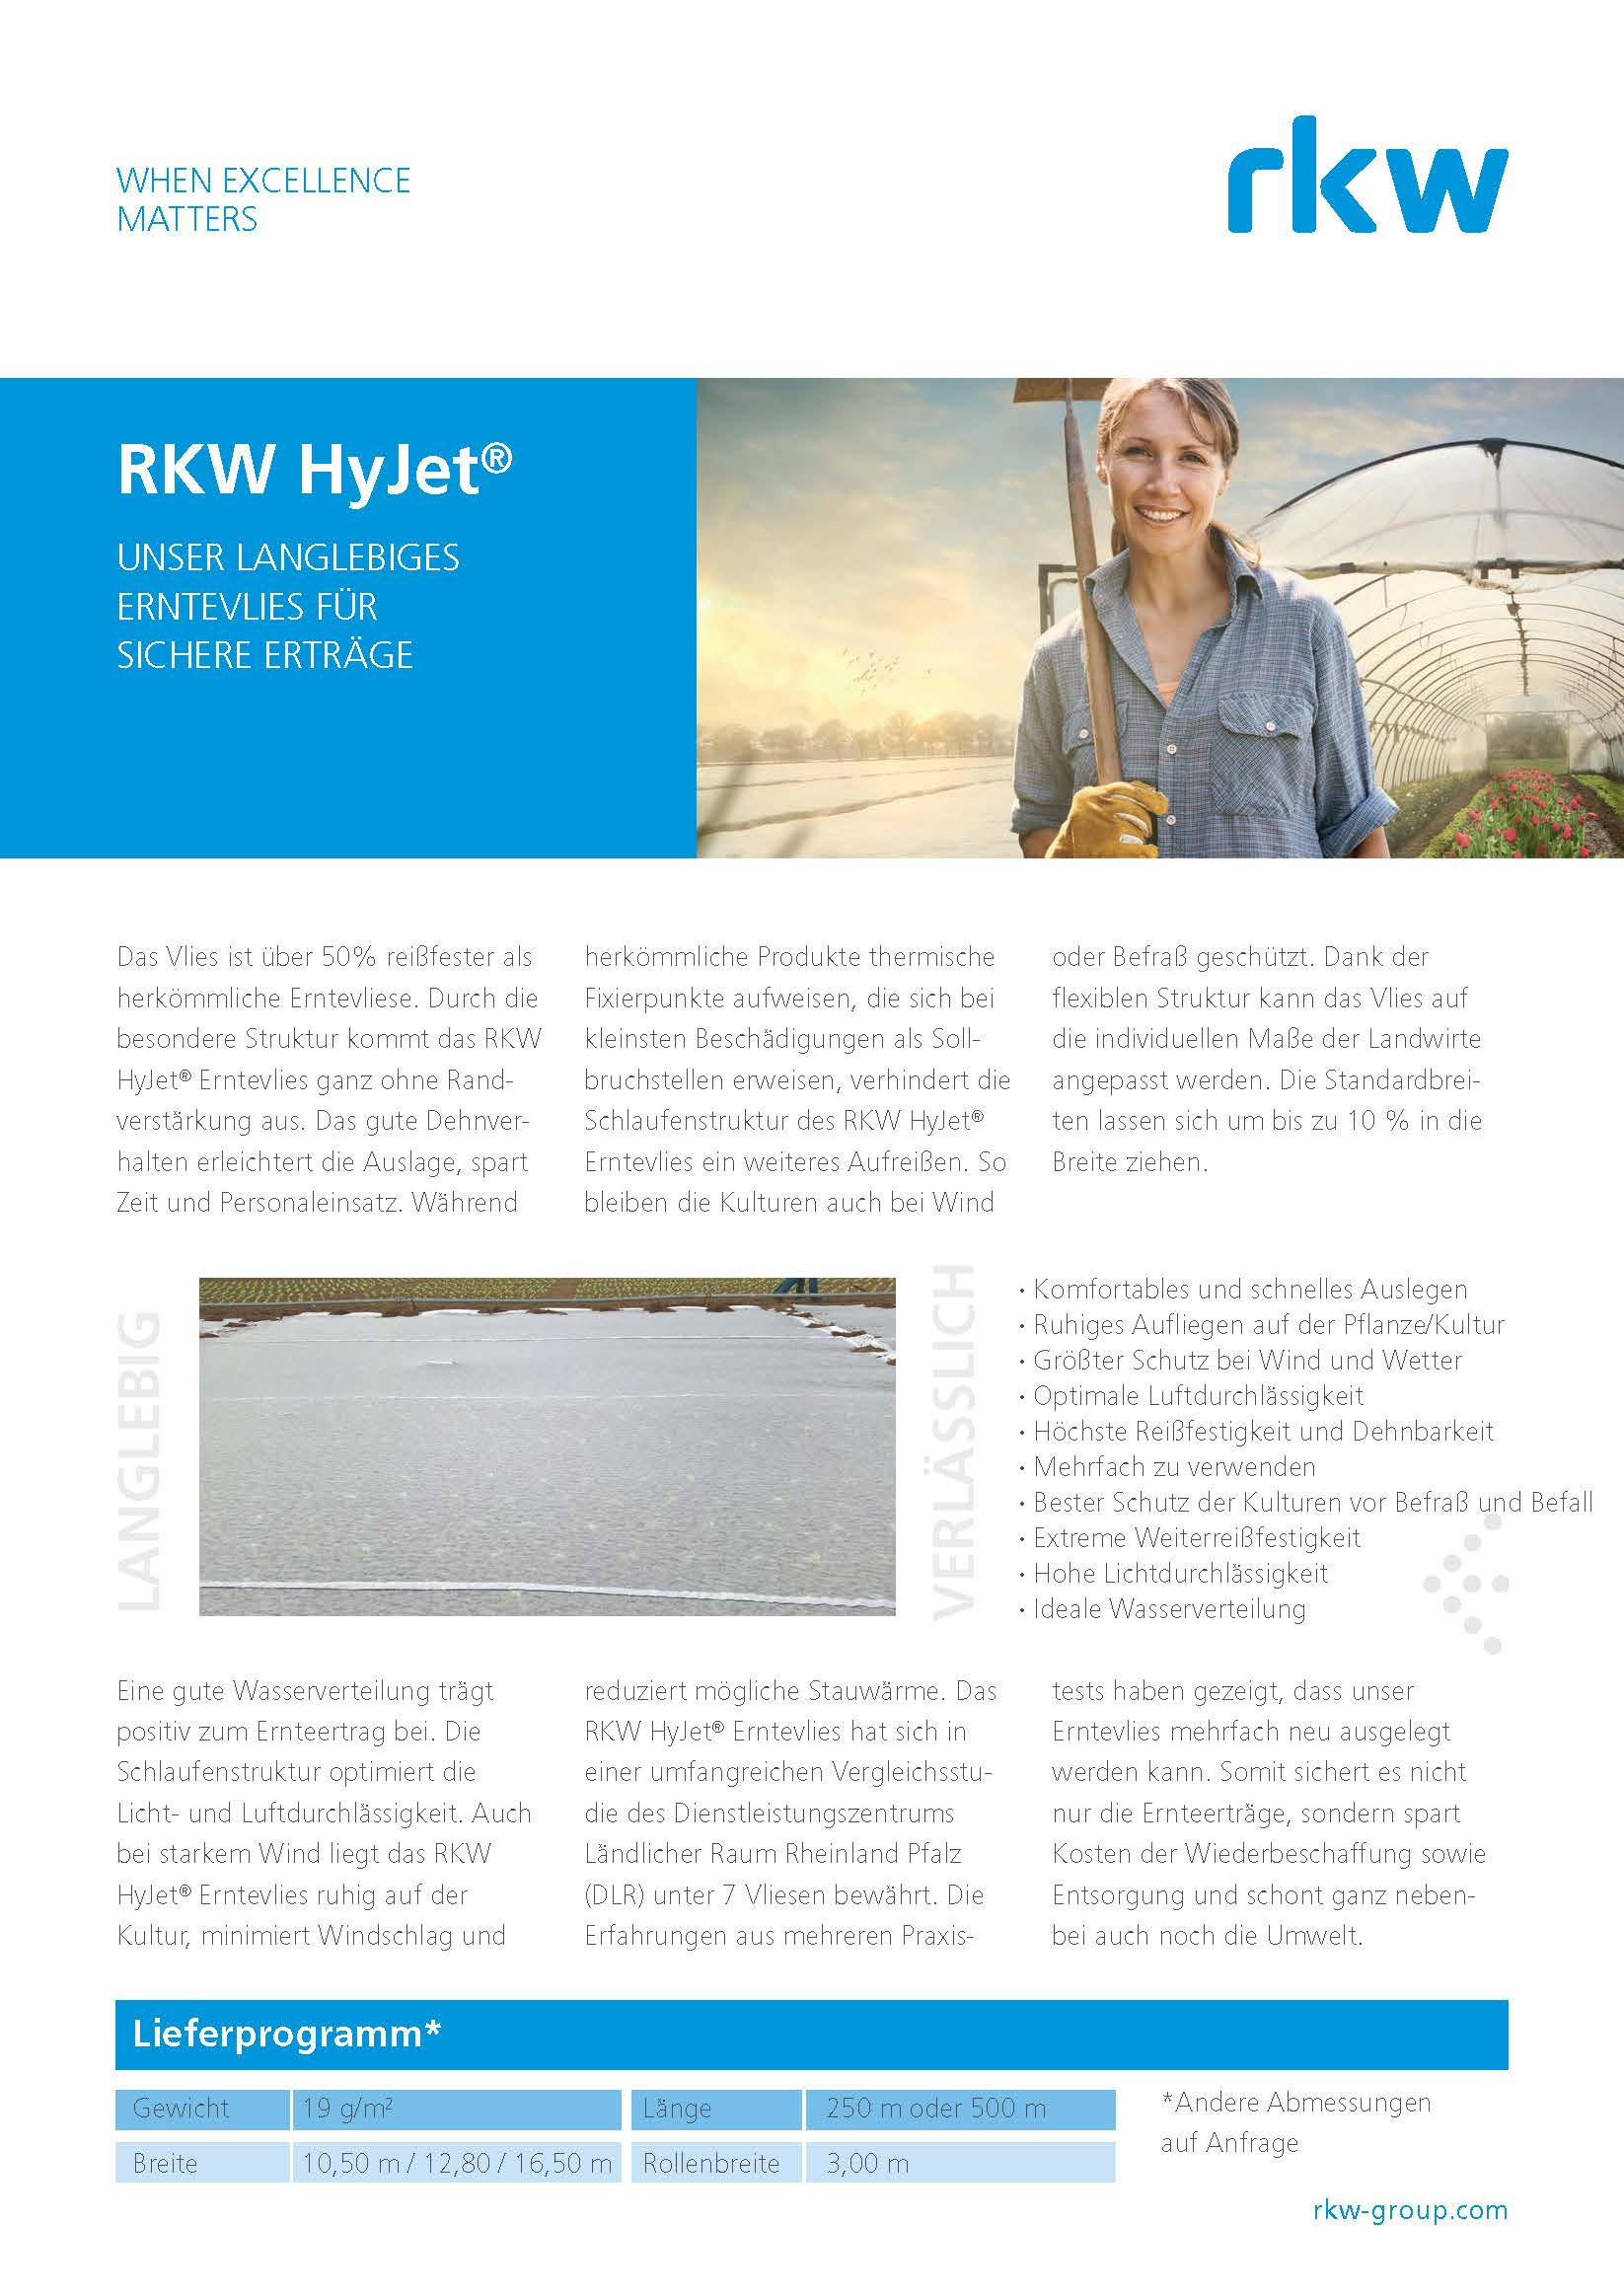 RKW HyJet Crop Cover DE